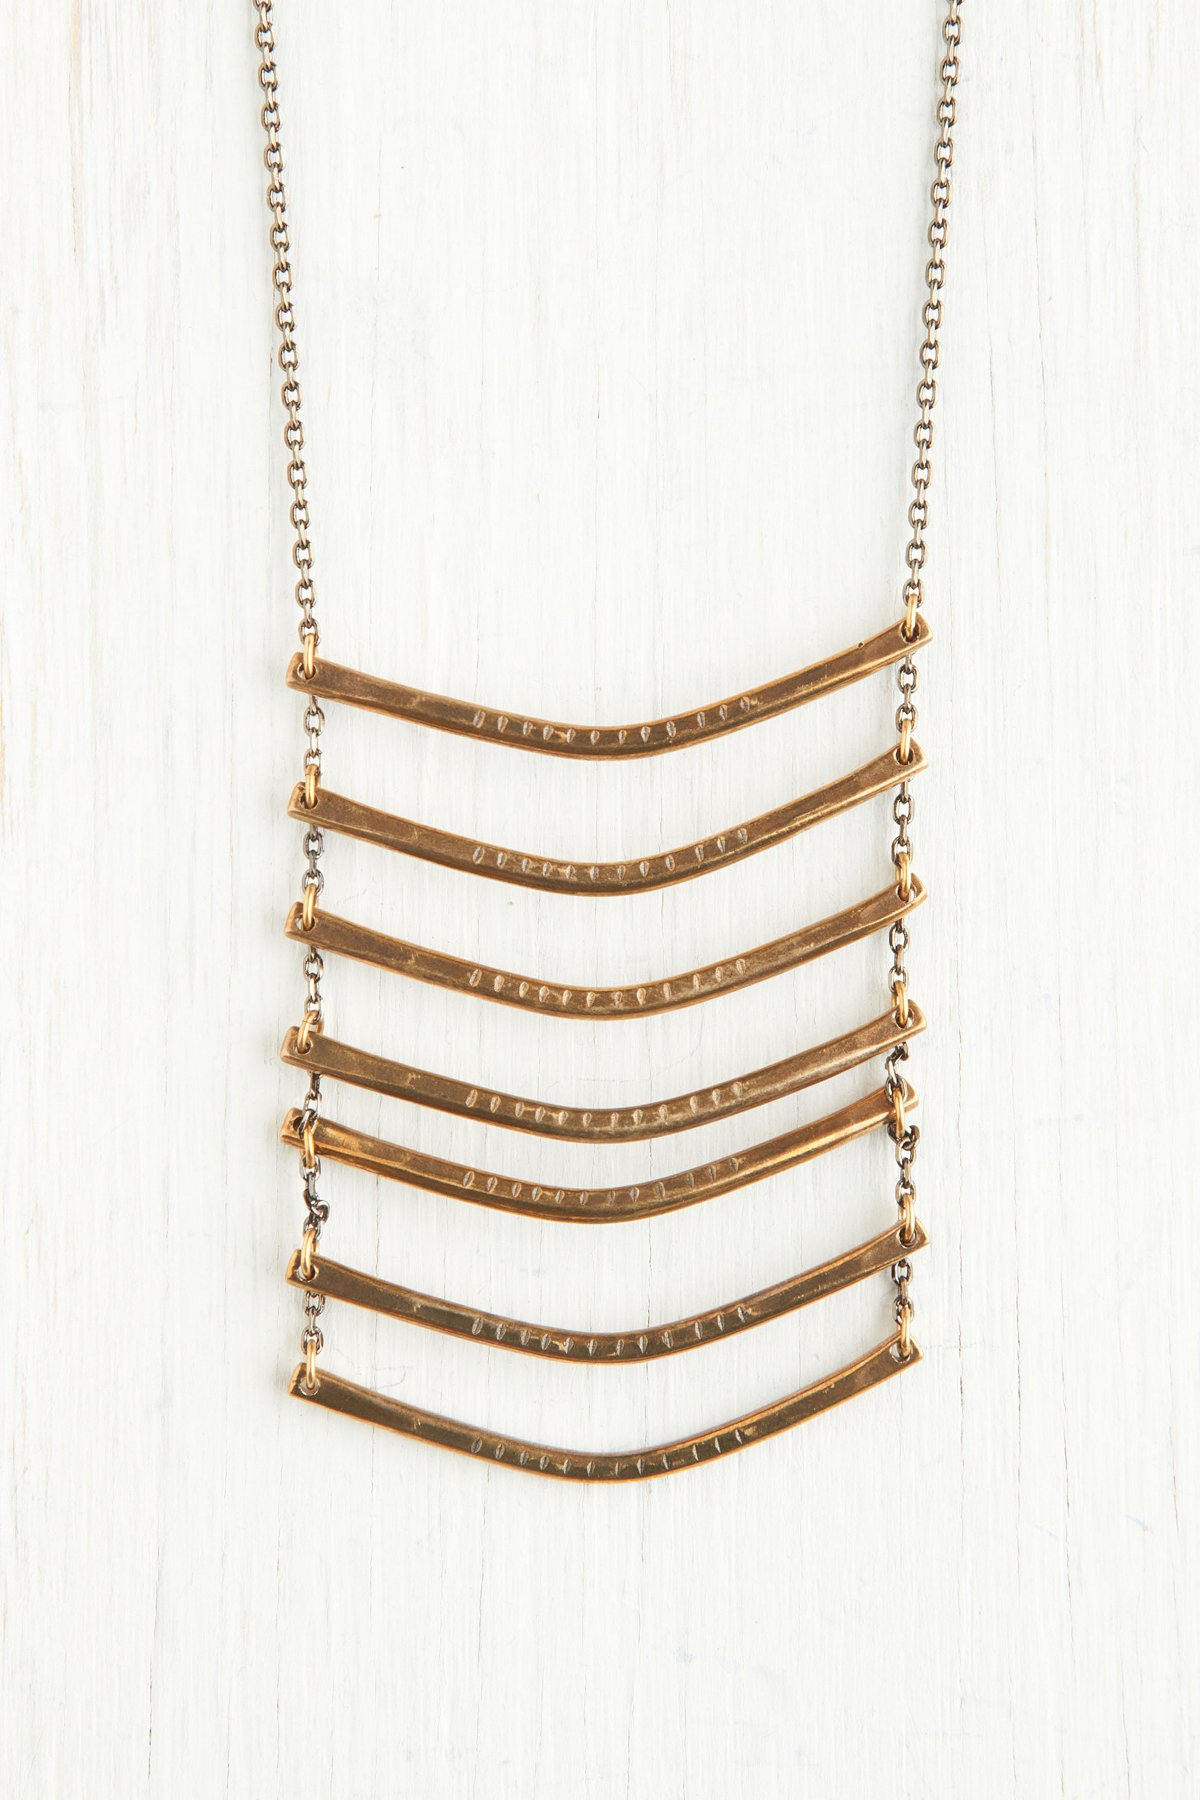 Breastplate Necklace